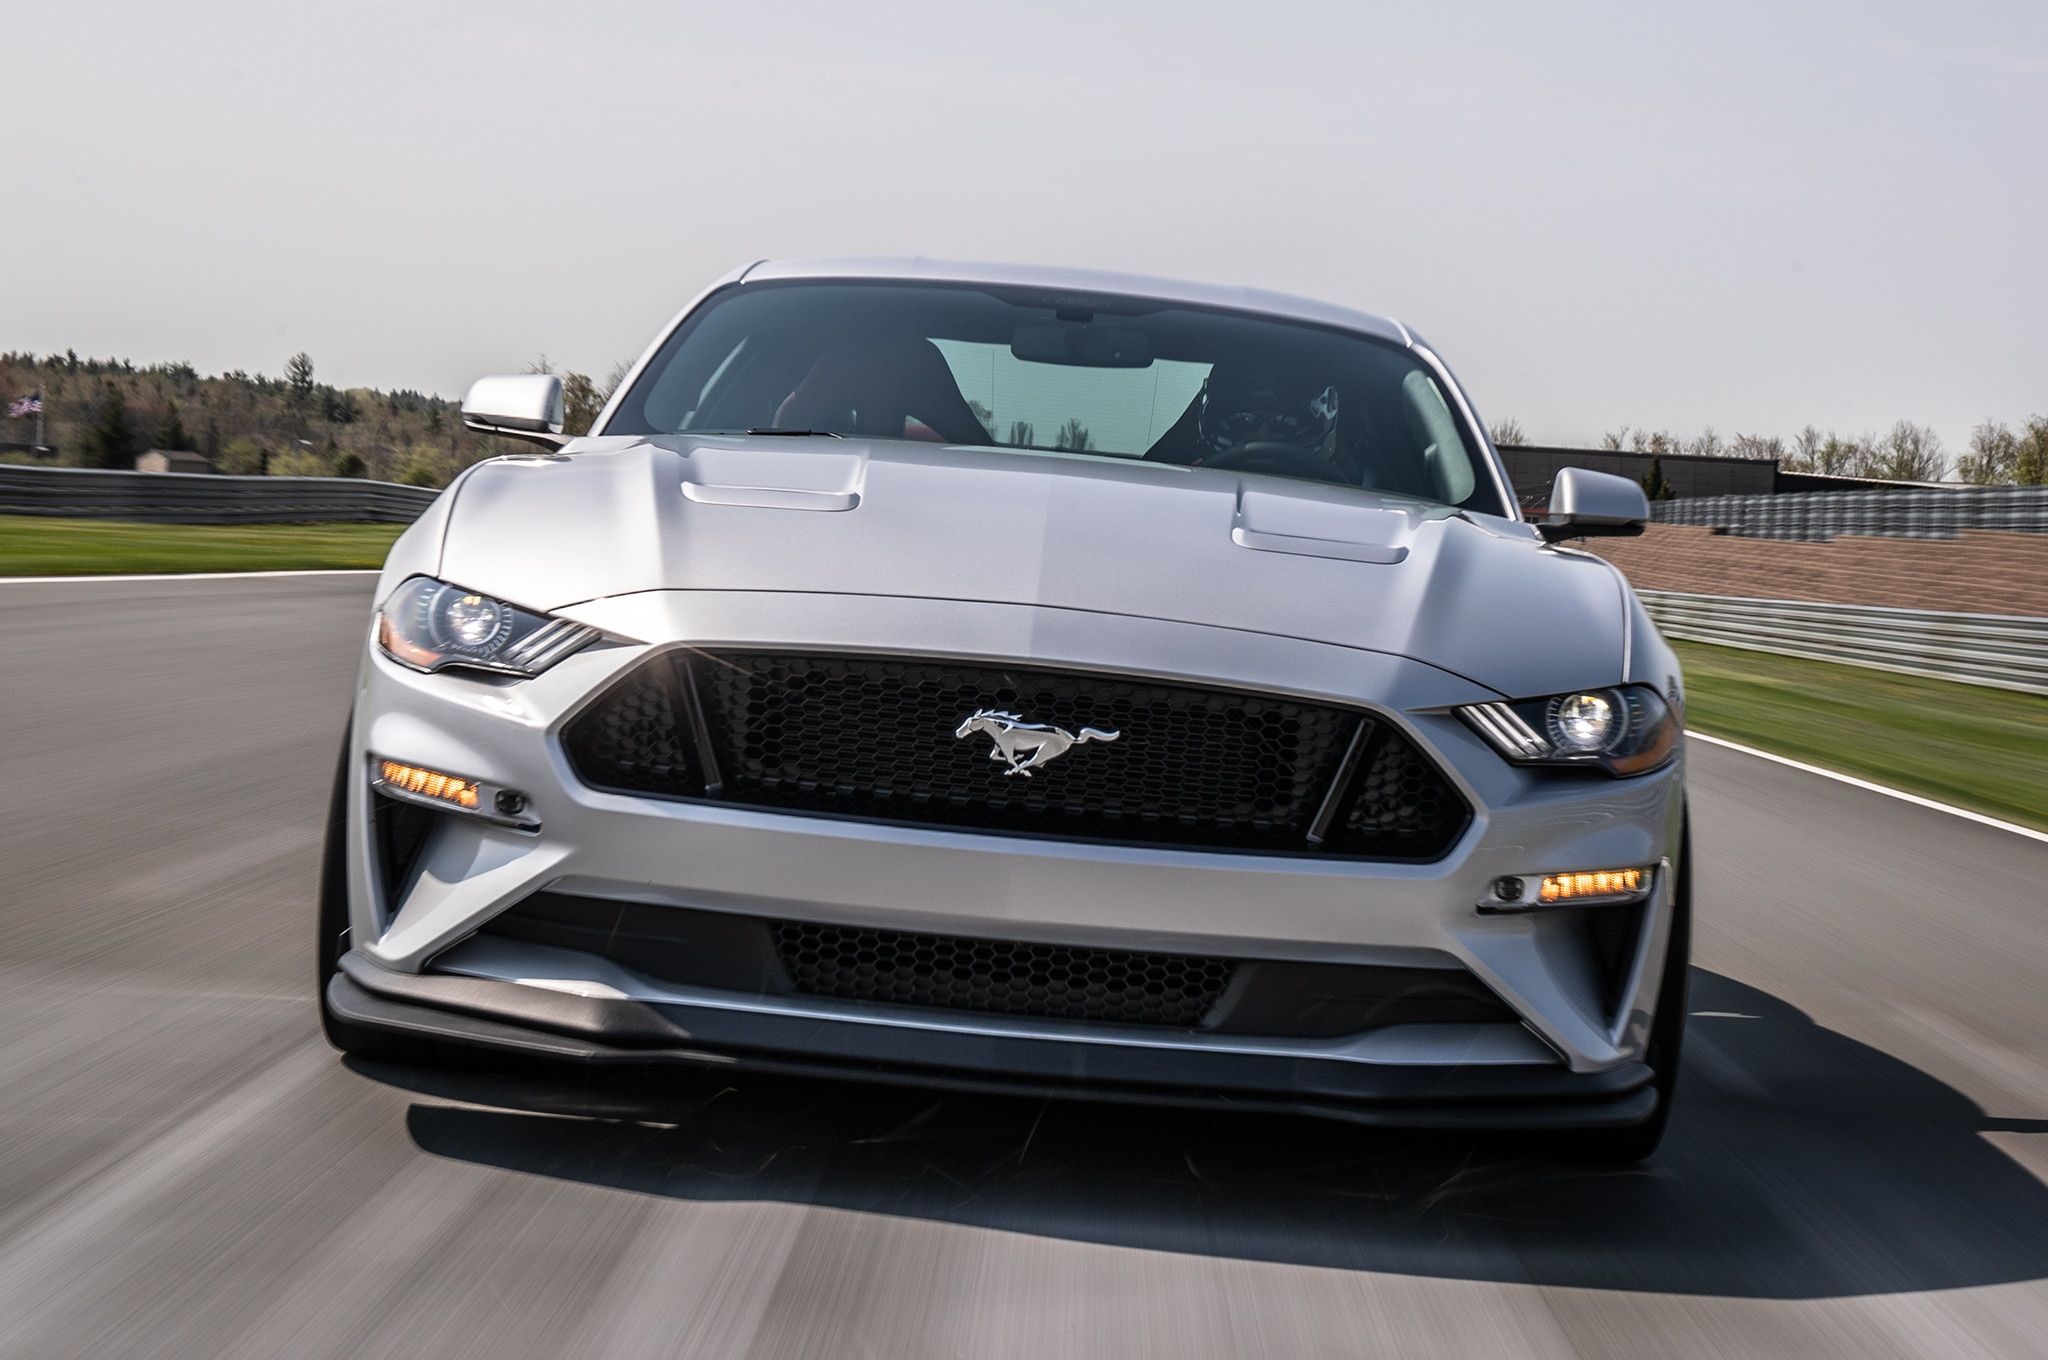 2018 Ford Mustang Gt Performance Pack Level 2 Quick Drive 2006 The Head Light Switch Also Left Front Headlight Show More